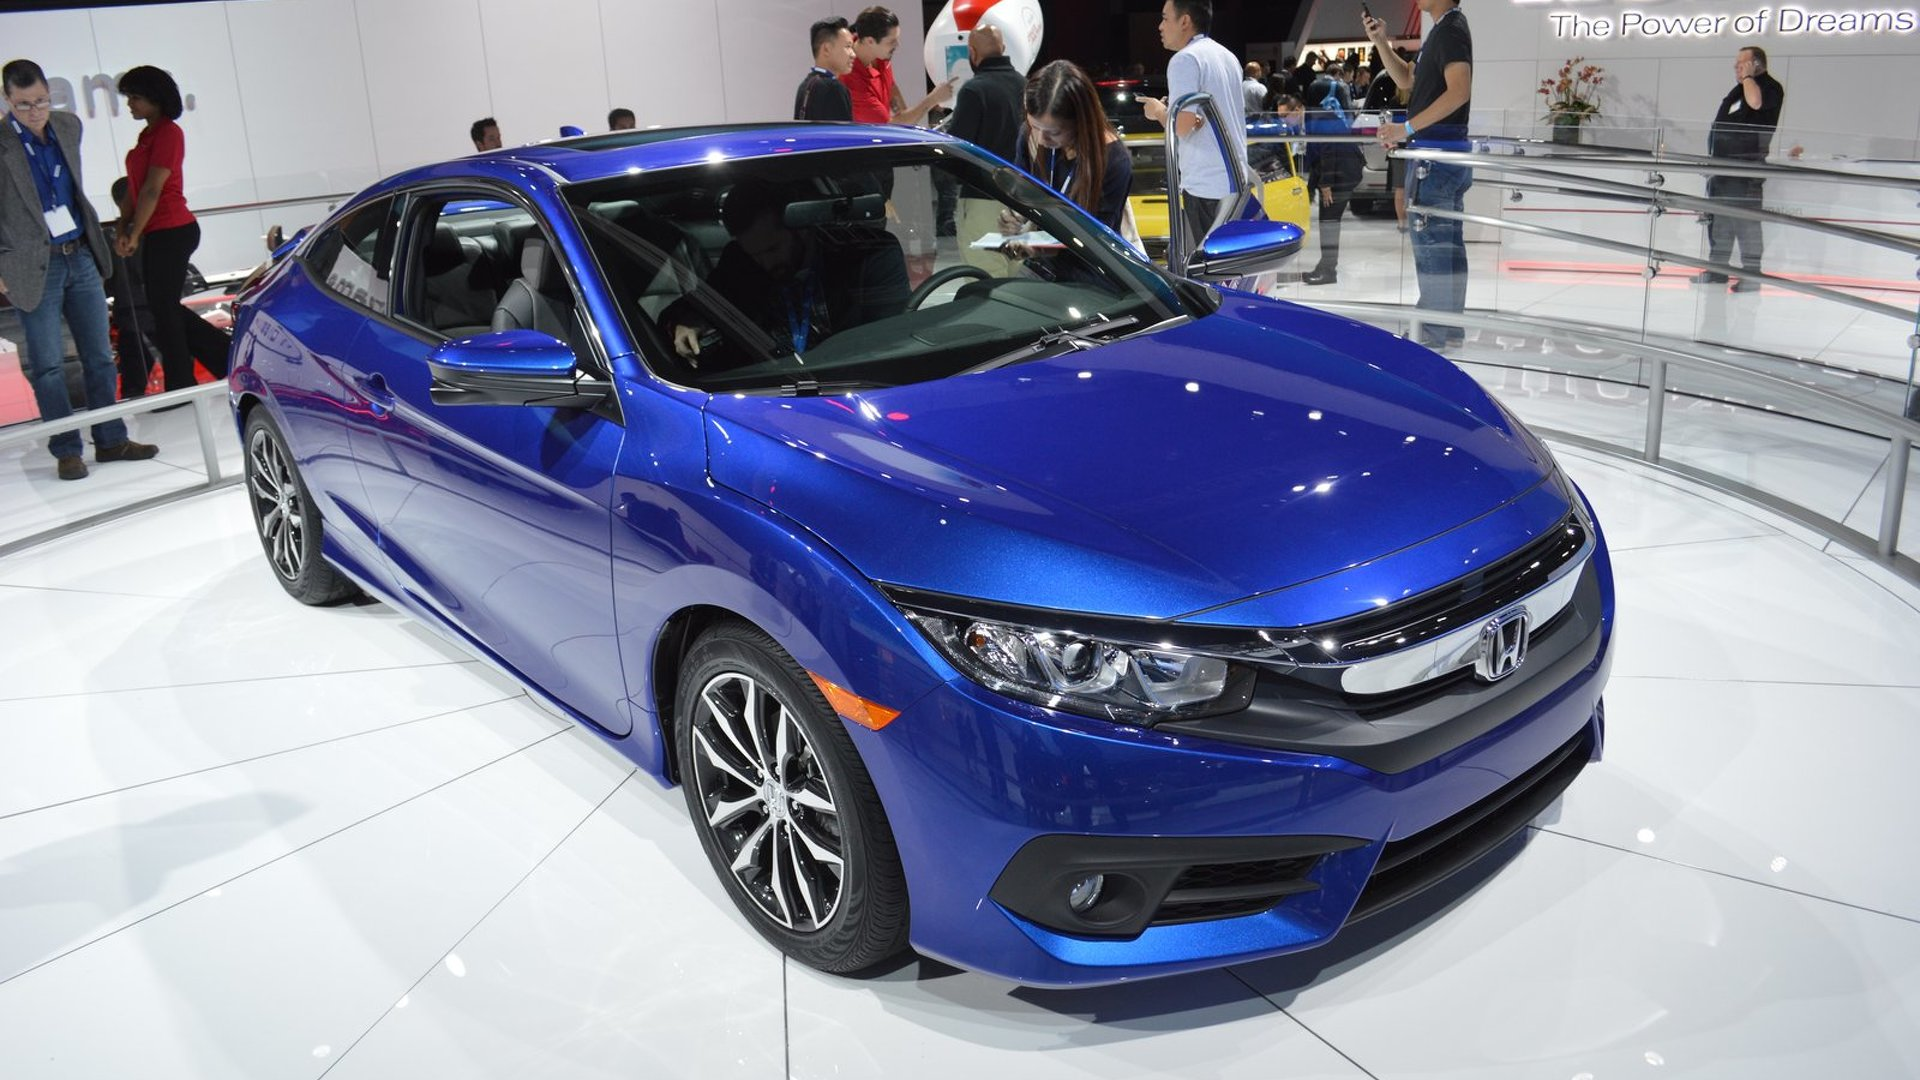 2016 Honda Civic Coupe unveiled with an optional turbocharged engine